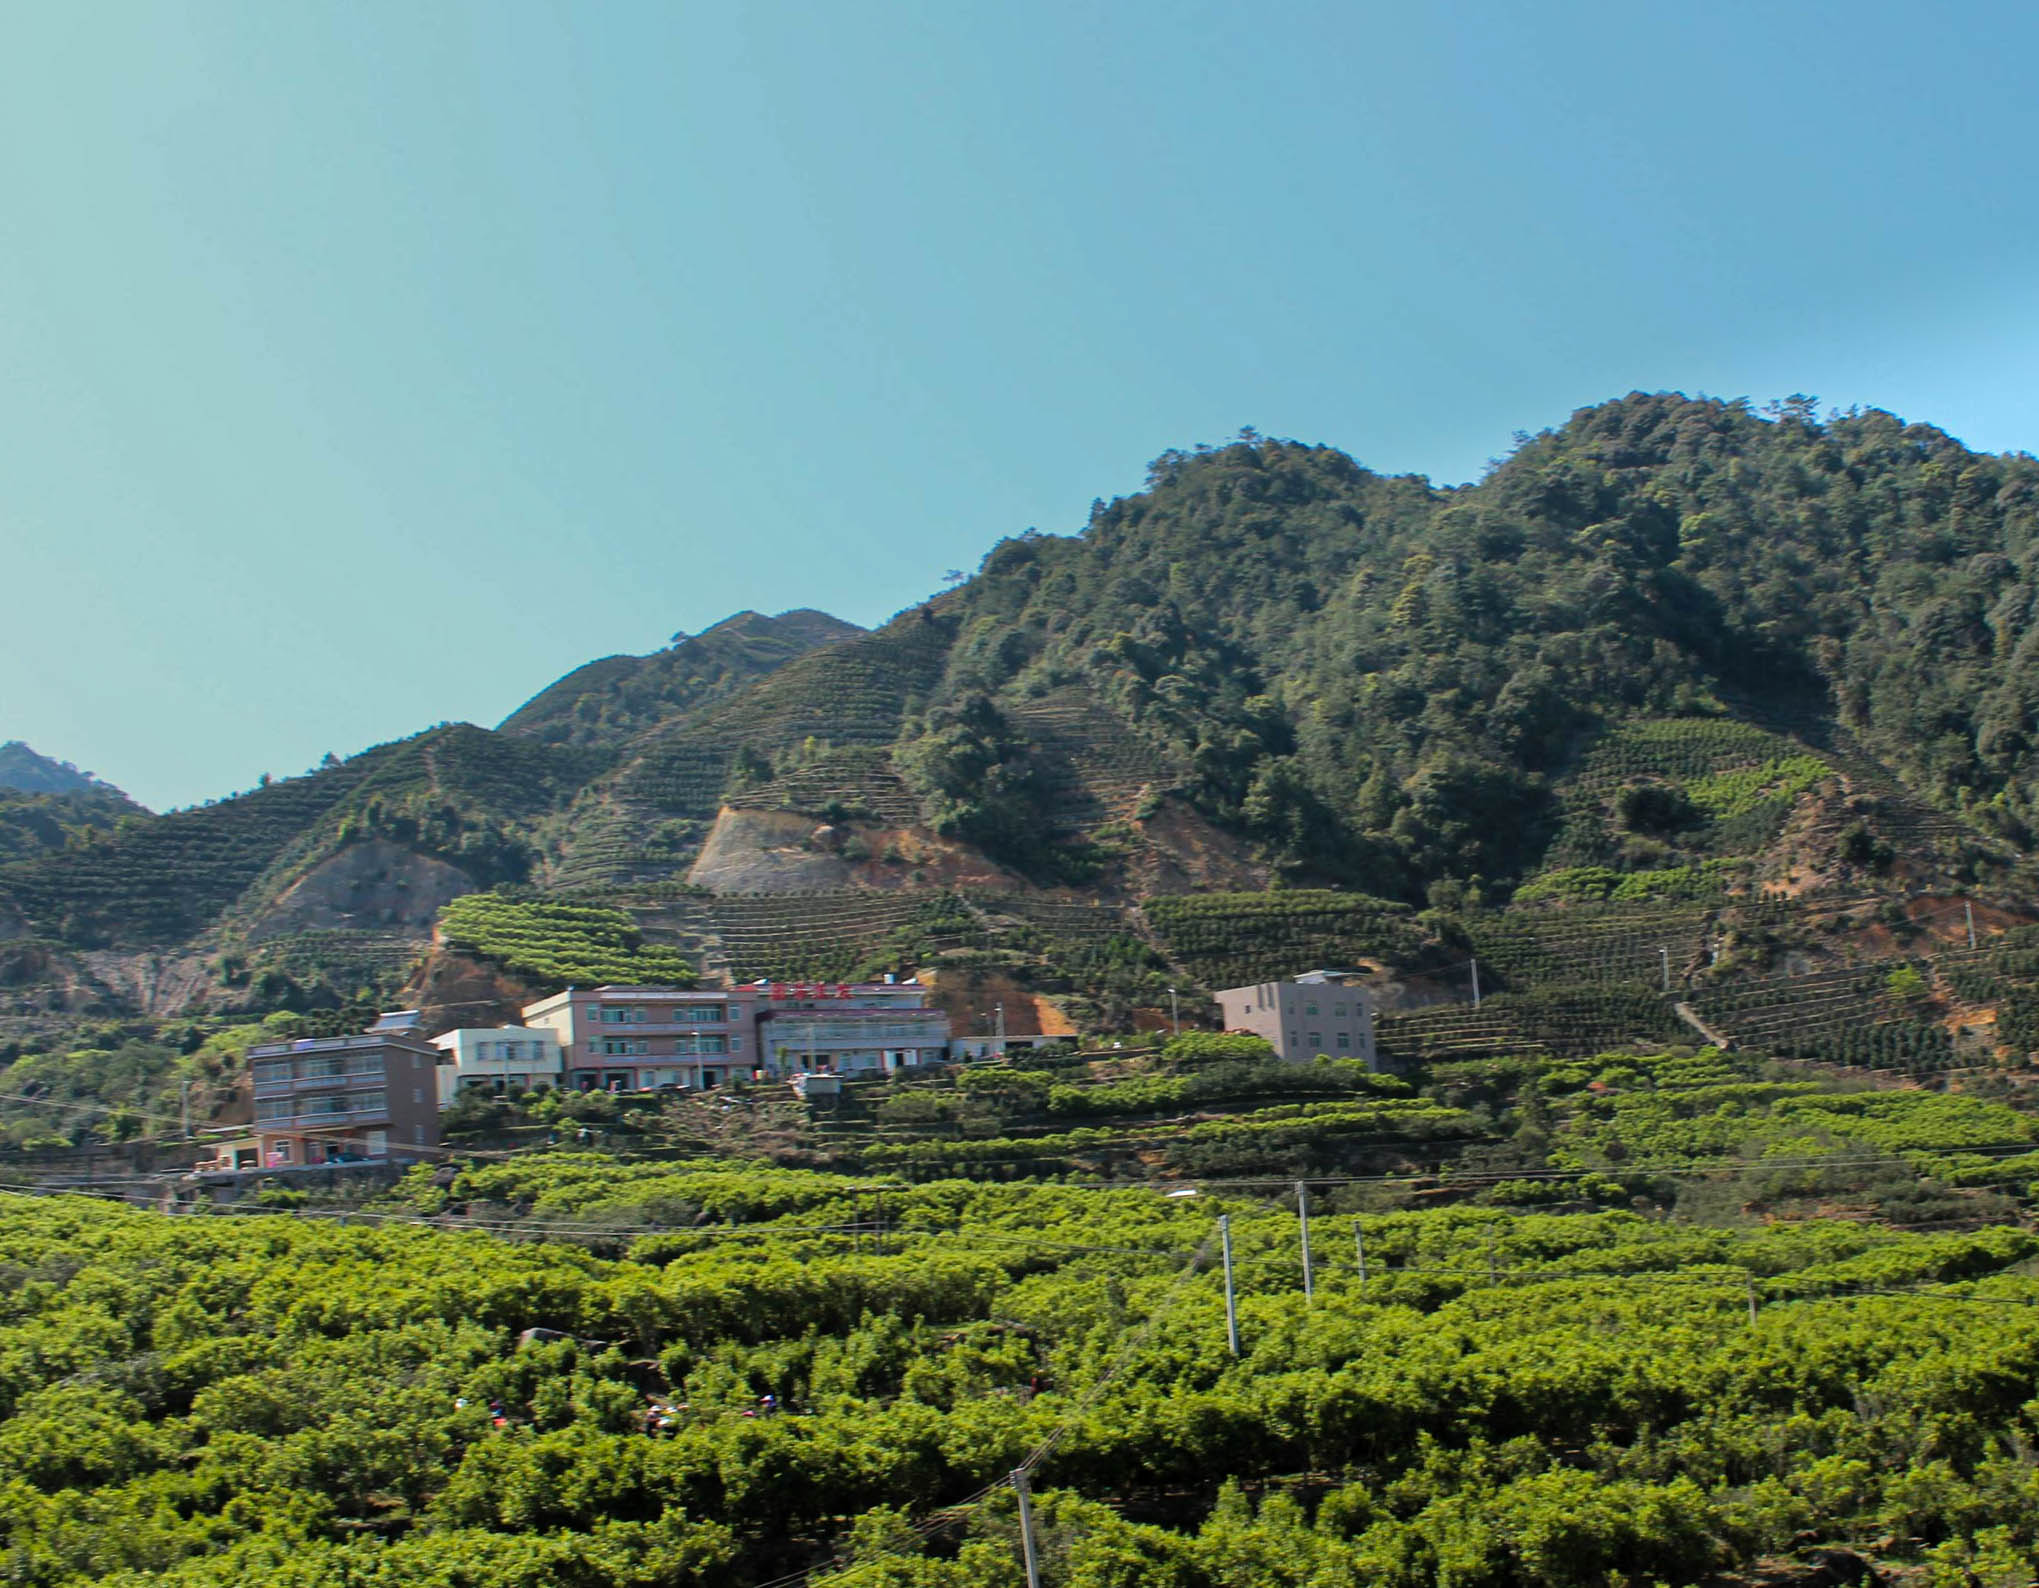 fenghuang-tea-field-8999_large-2